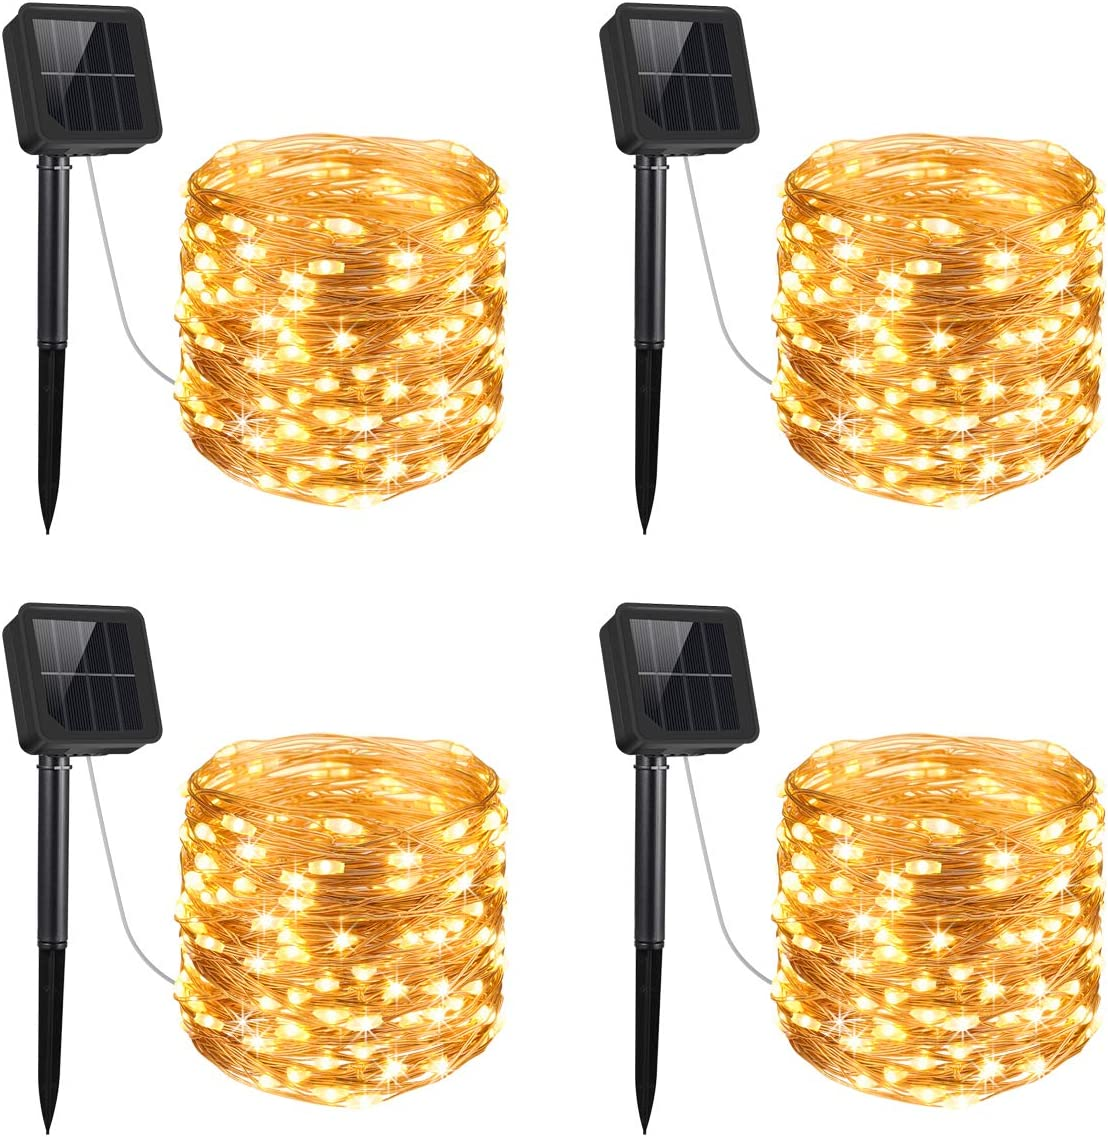 AMIR Upgraded Solar String Lights, 4 Pack 33ft Mini 100 LED Outdoor String Lights, Waterproof 8 Lighting Modes Solar Decoration Lights for Gardens, Patios, Homes, Parties Warm White